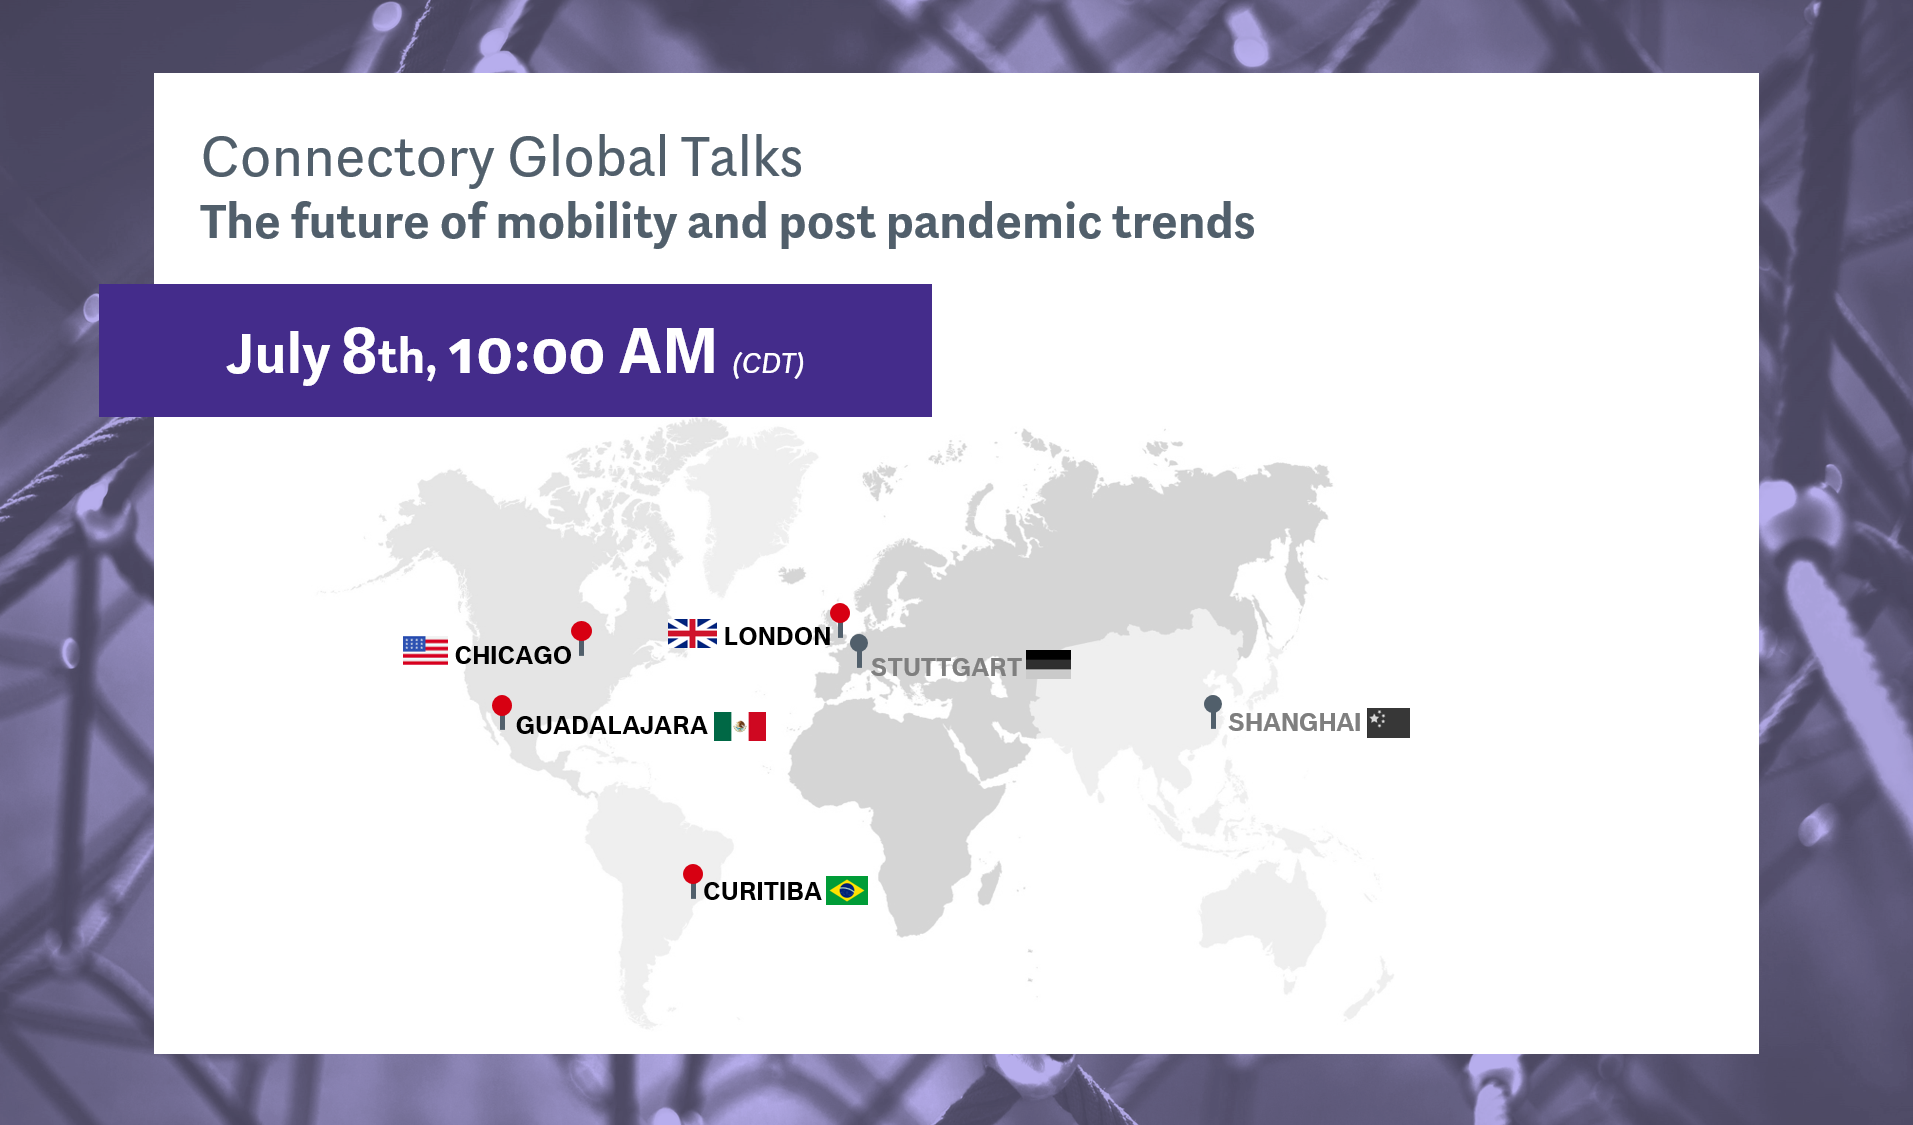 Connectory Global Talks: The future of mobility and post pandemic trends